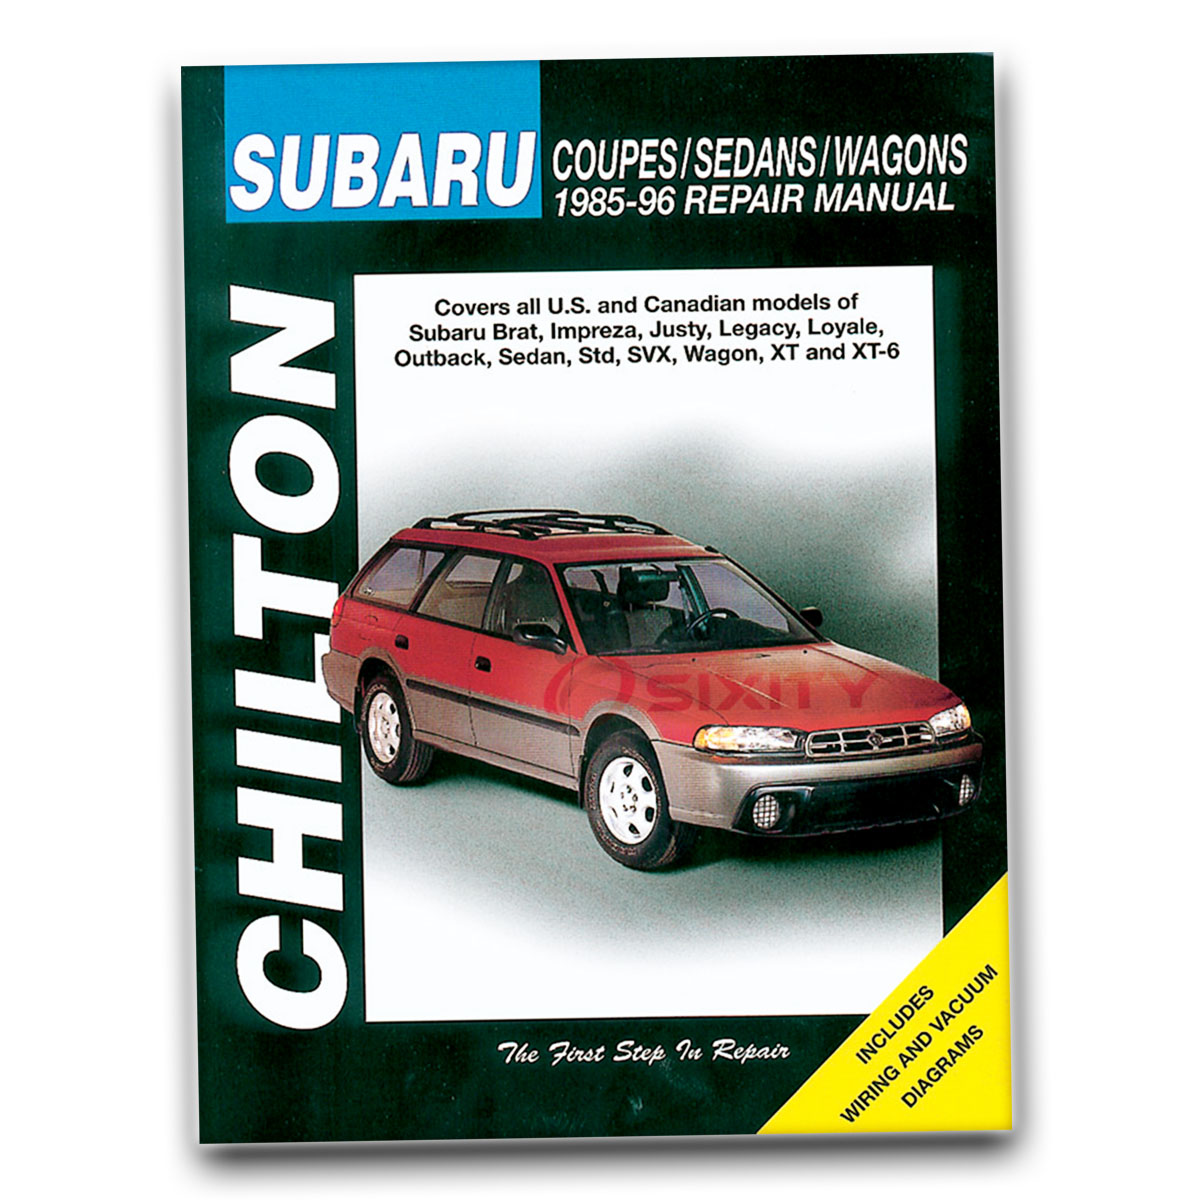 Subaru J10 Wiring Diagram Libraries 88 Gl Chilton Repair Manual For Justy Dl Rs Shop Service Garagechilton